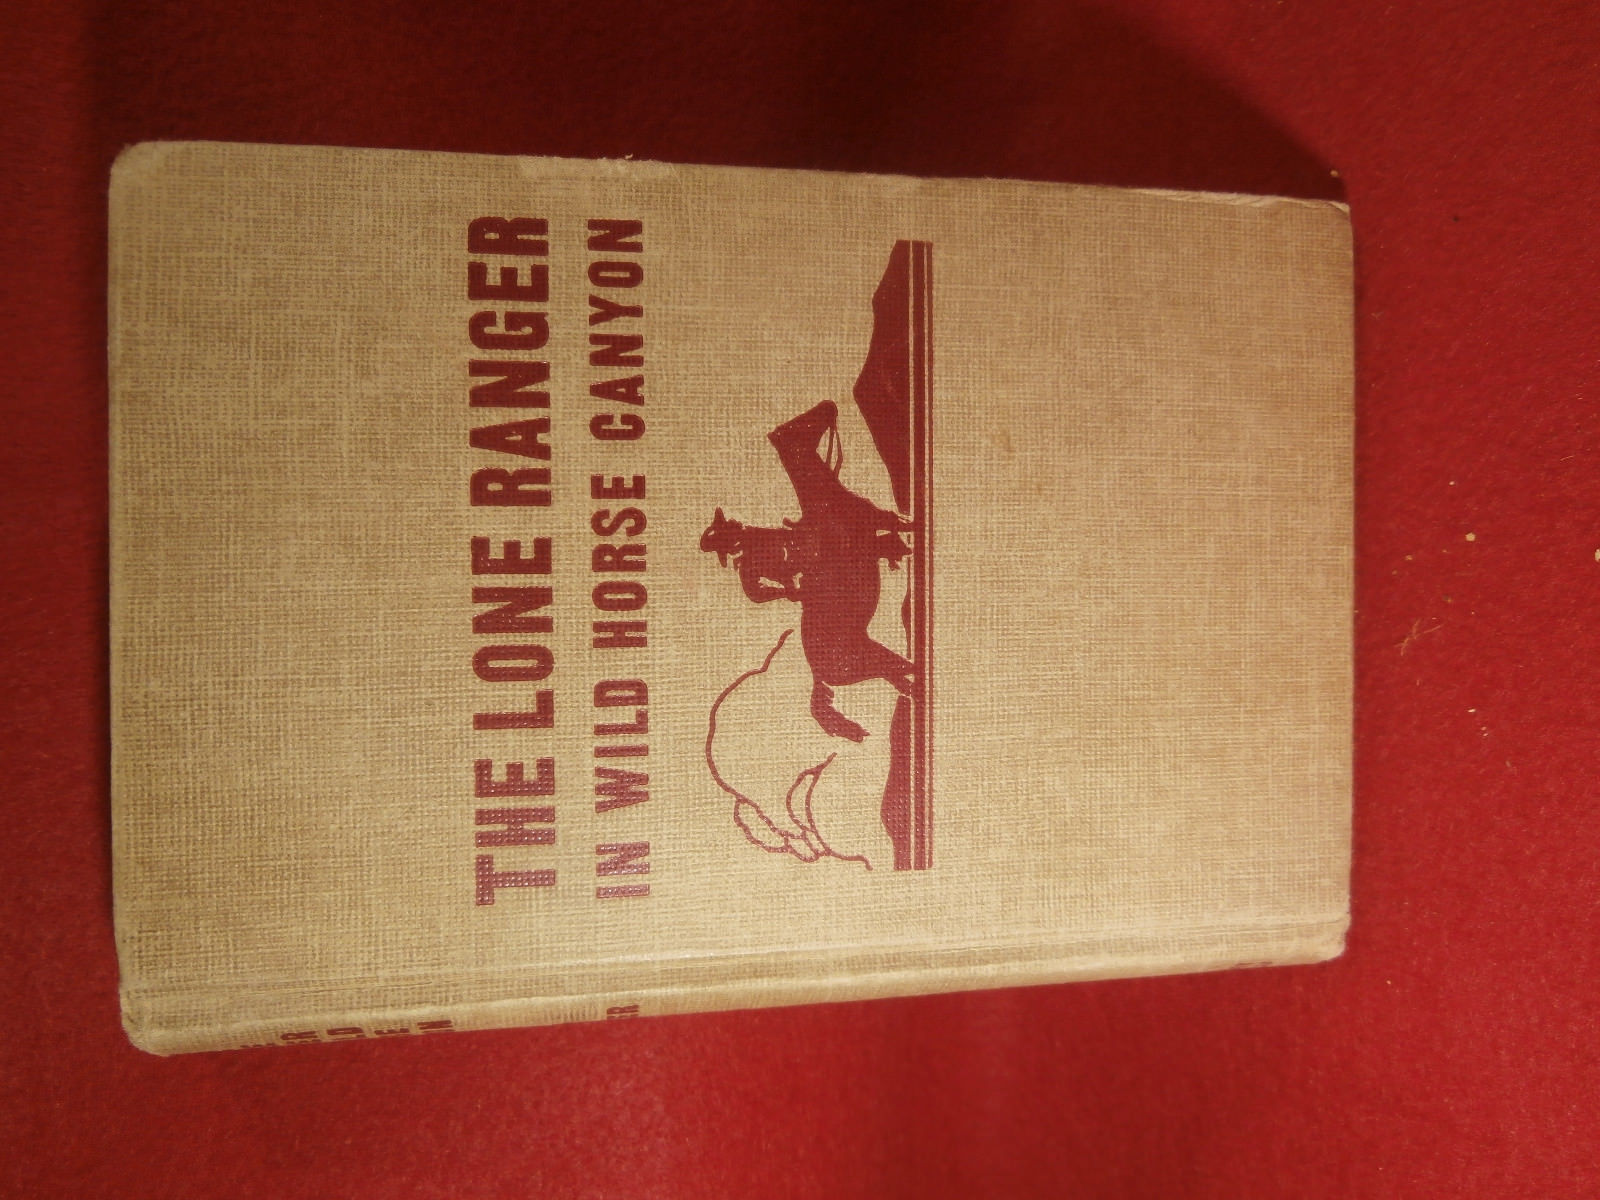 The Lone Ranger in Wild Horse Canyon by Striker 1st Edition 1950